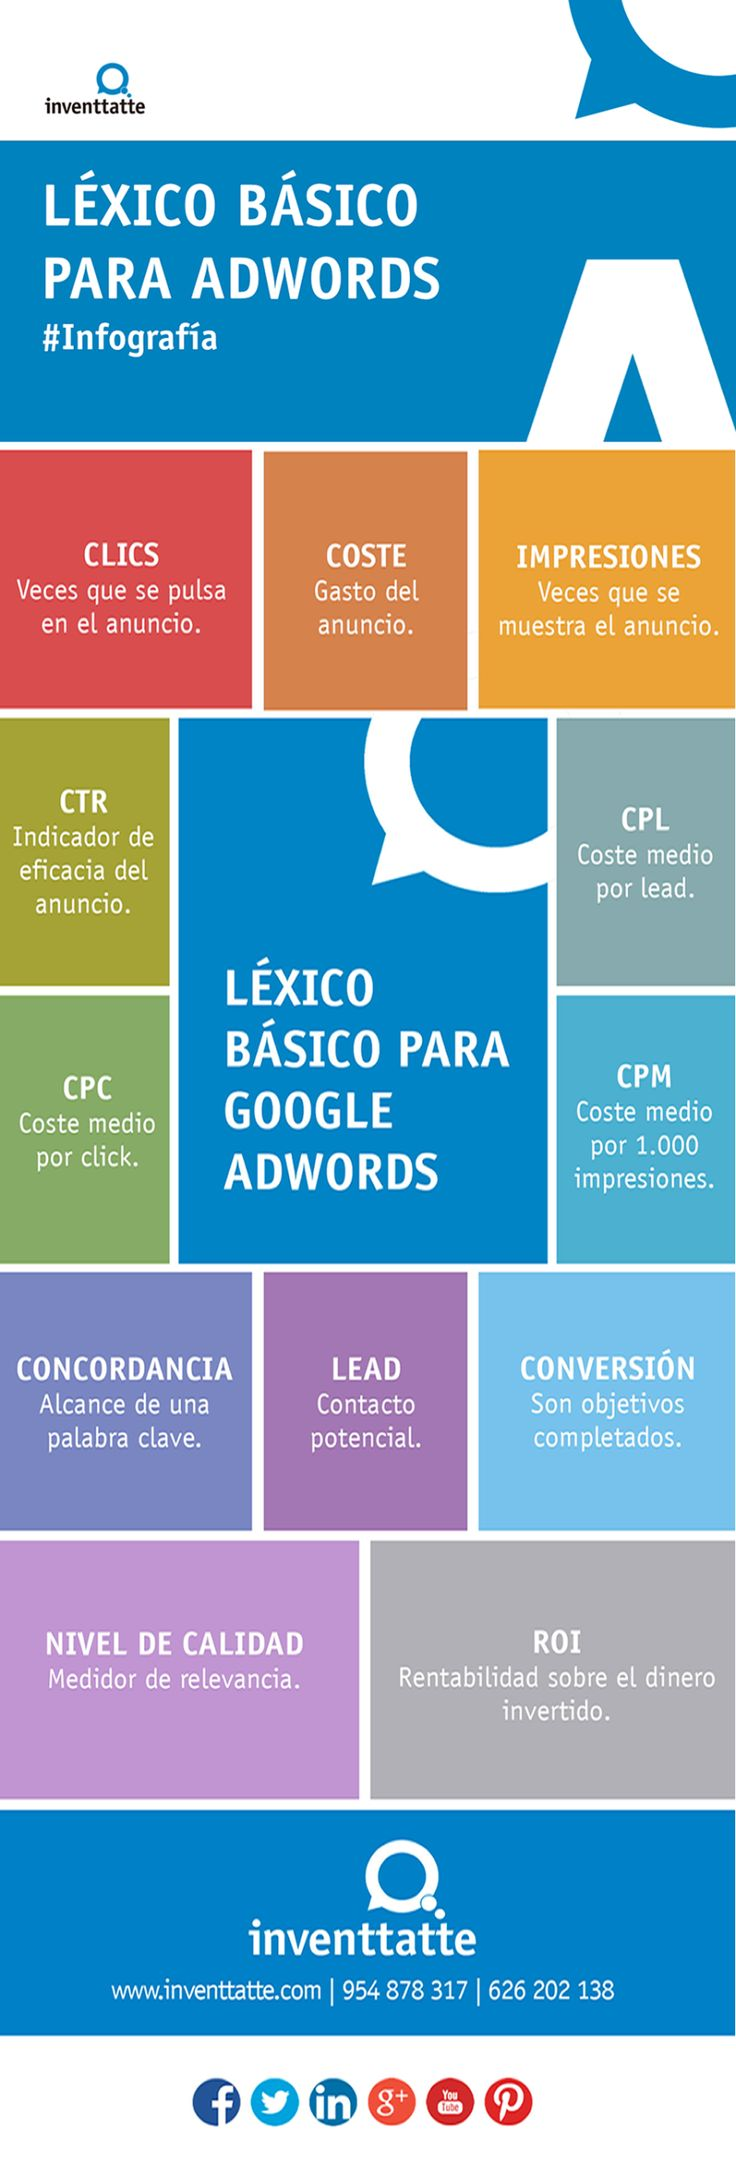 Léxico básico para Google Adwords #infografia #infographic #marketing